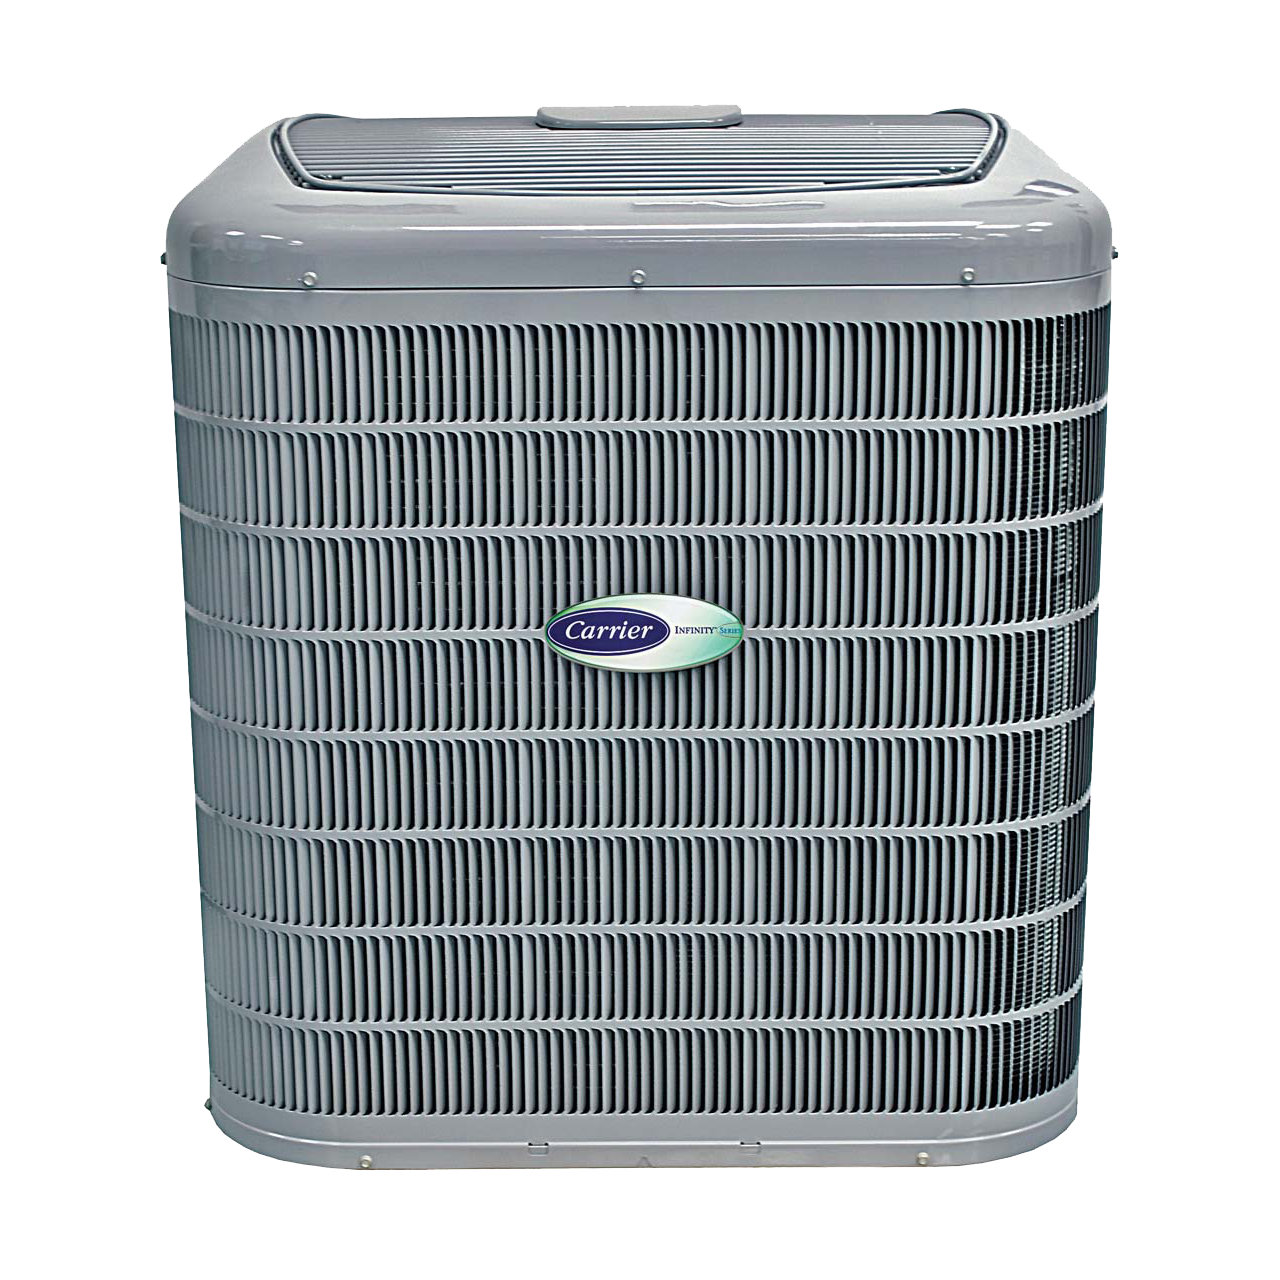 Carrier Infinity 21 Central Air Conditioner